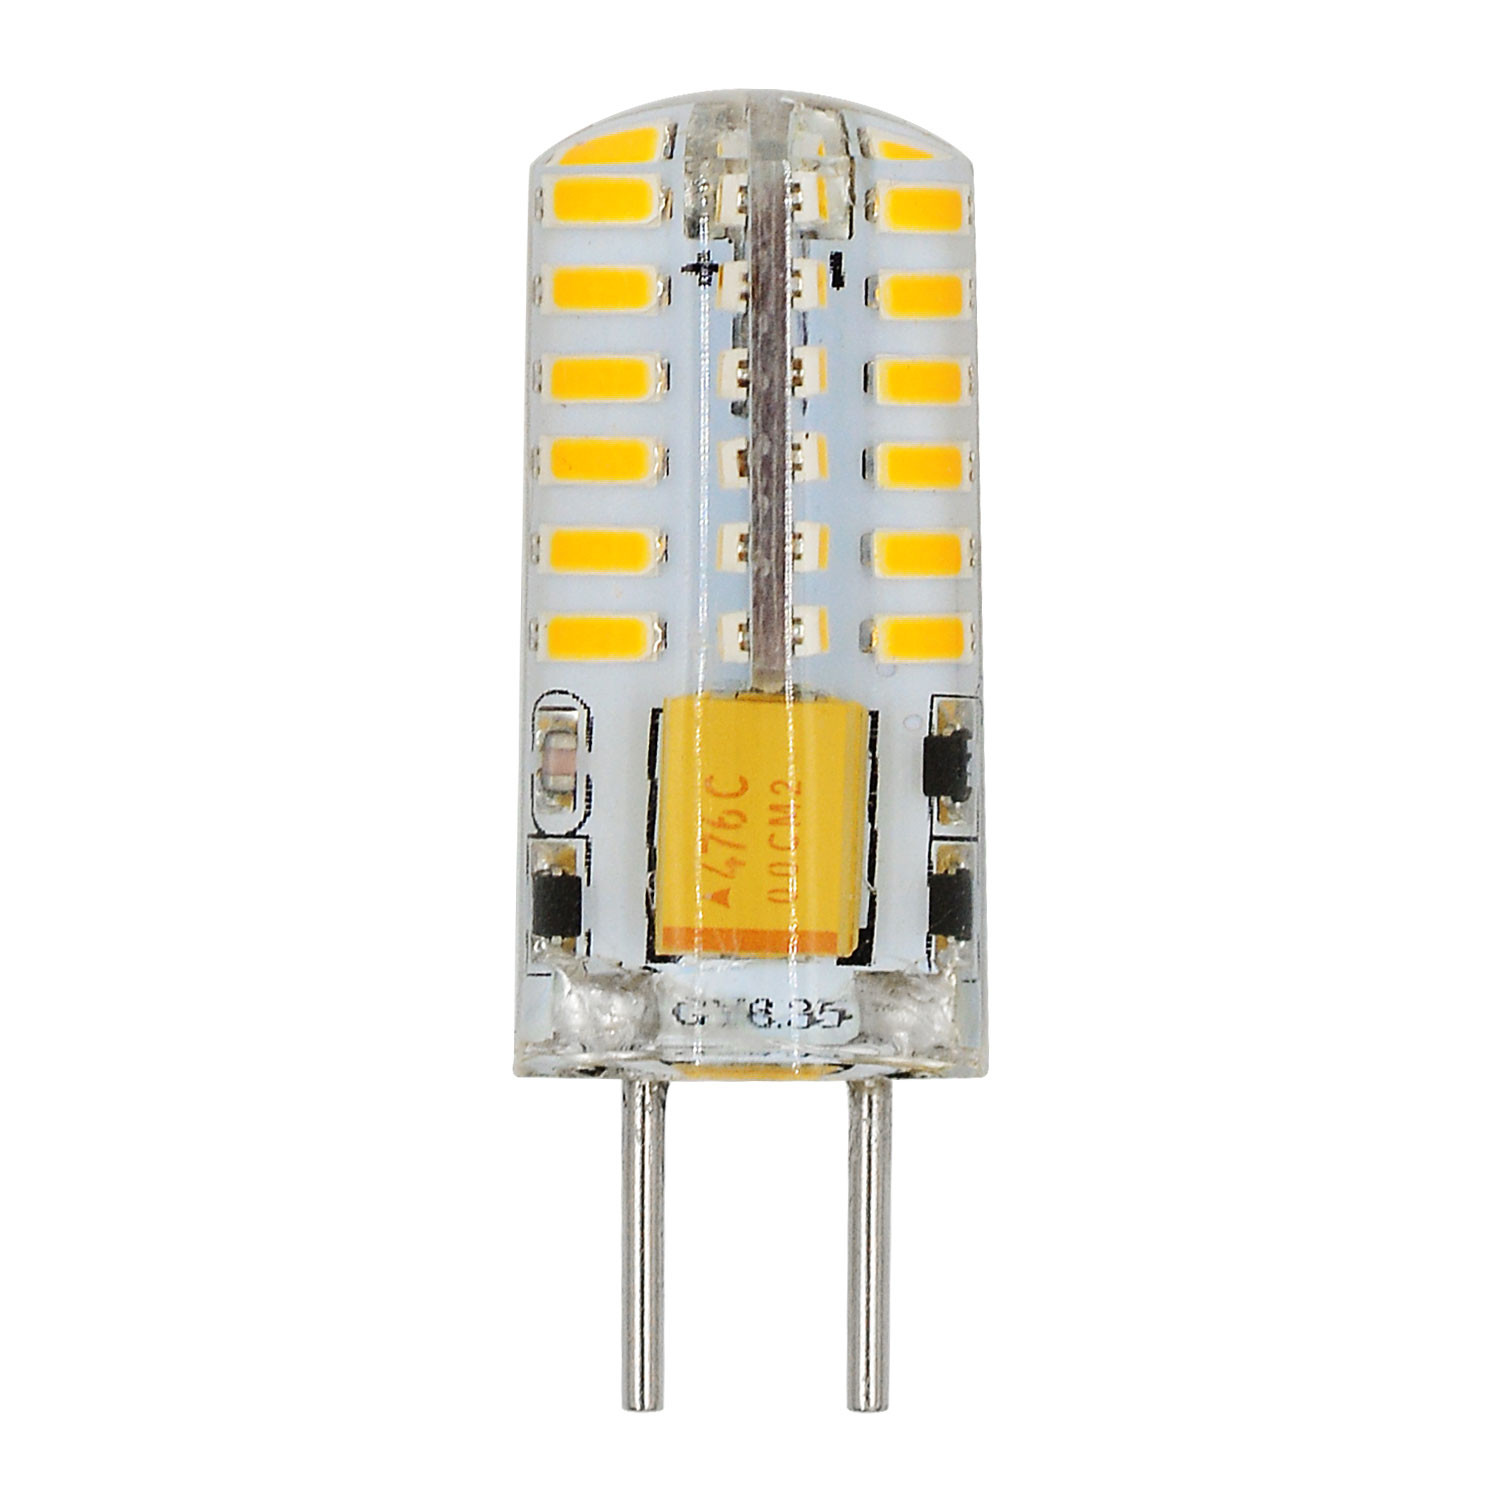 MENGS® GY6.35 2W LED Light 48x 3014 SMD LED Lamp Bulb AC/DC 12V In Warm White Energy-Saving Light